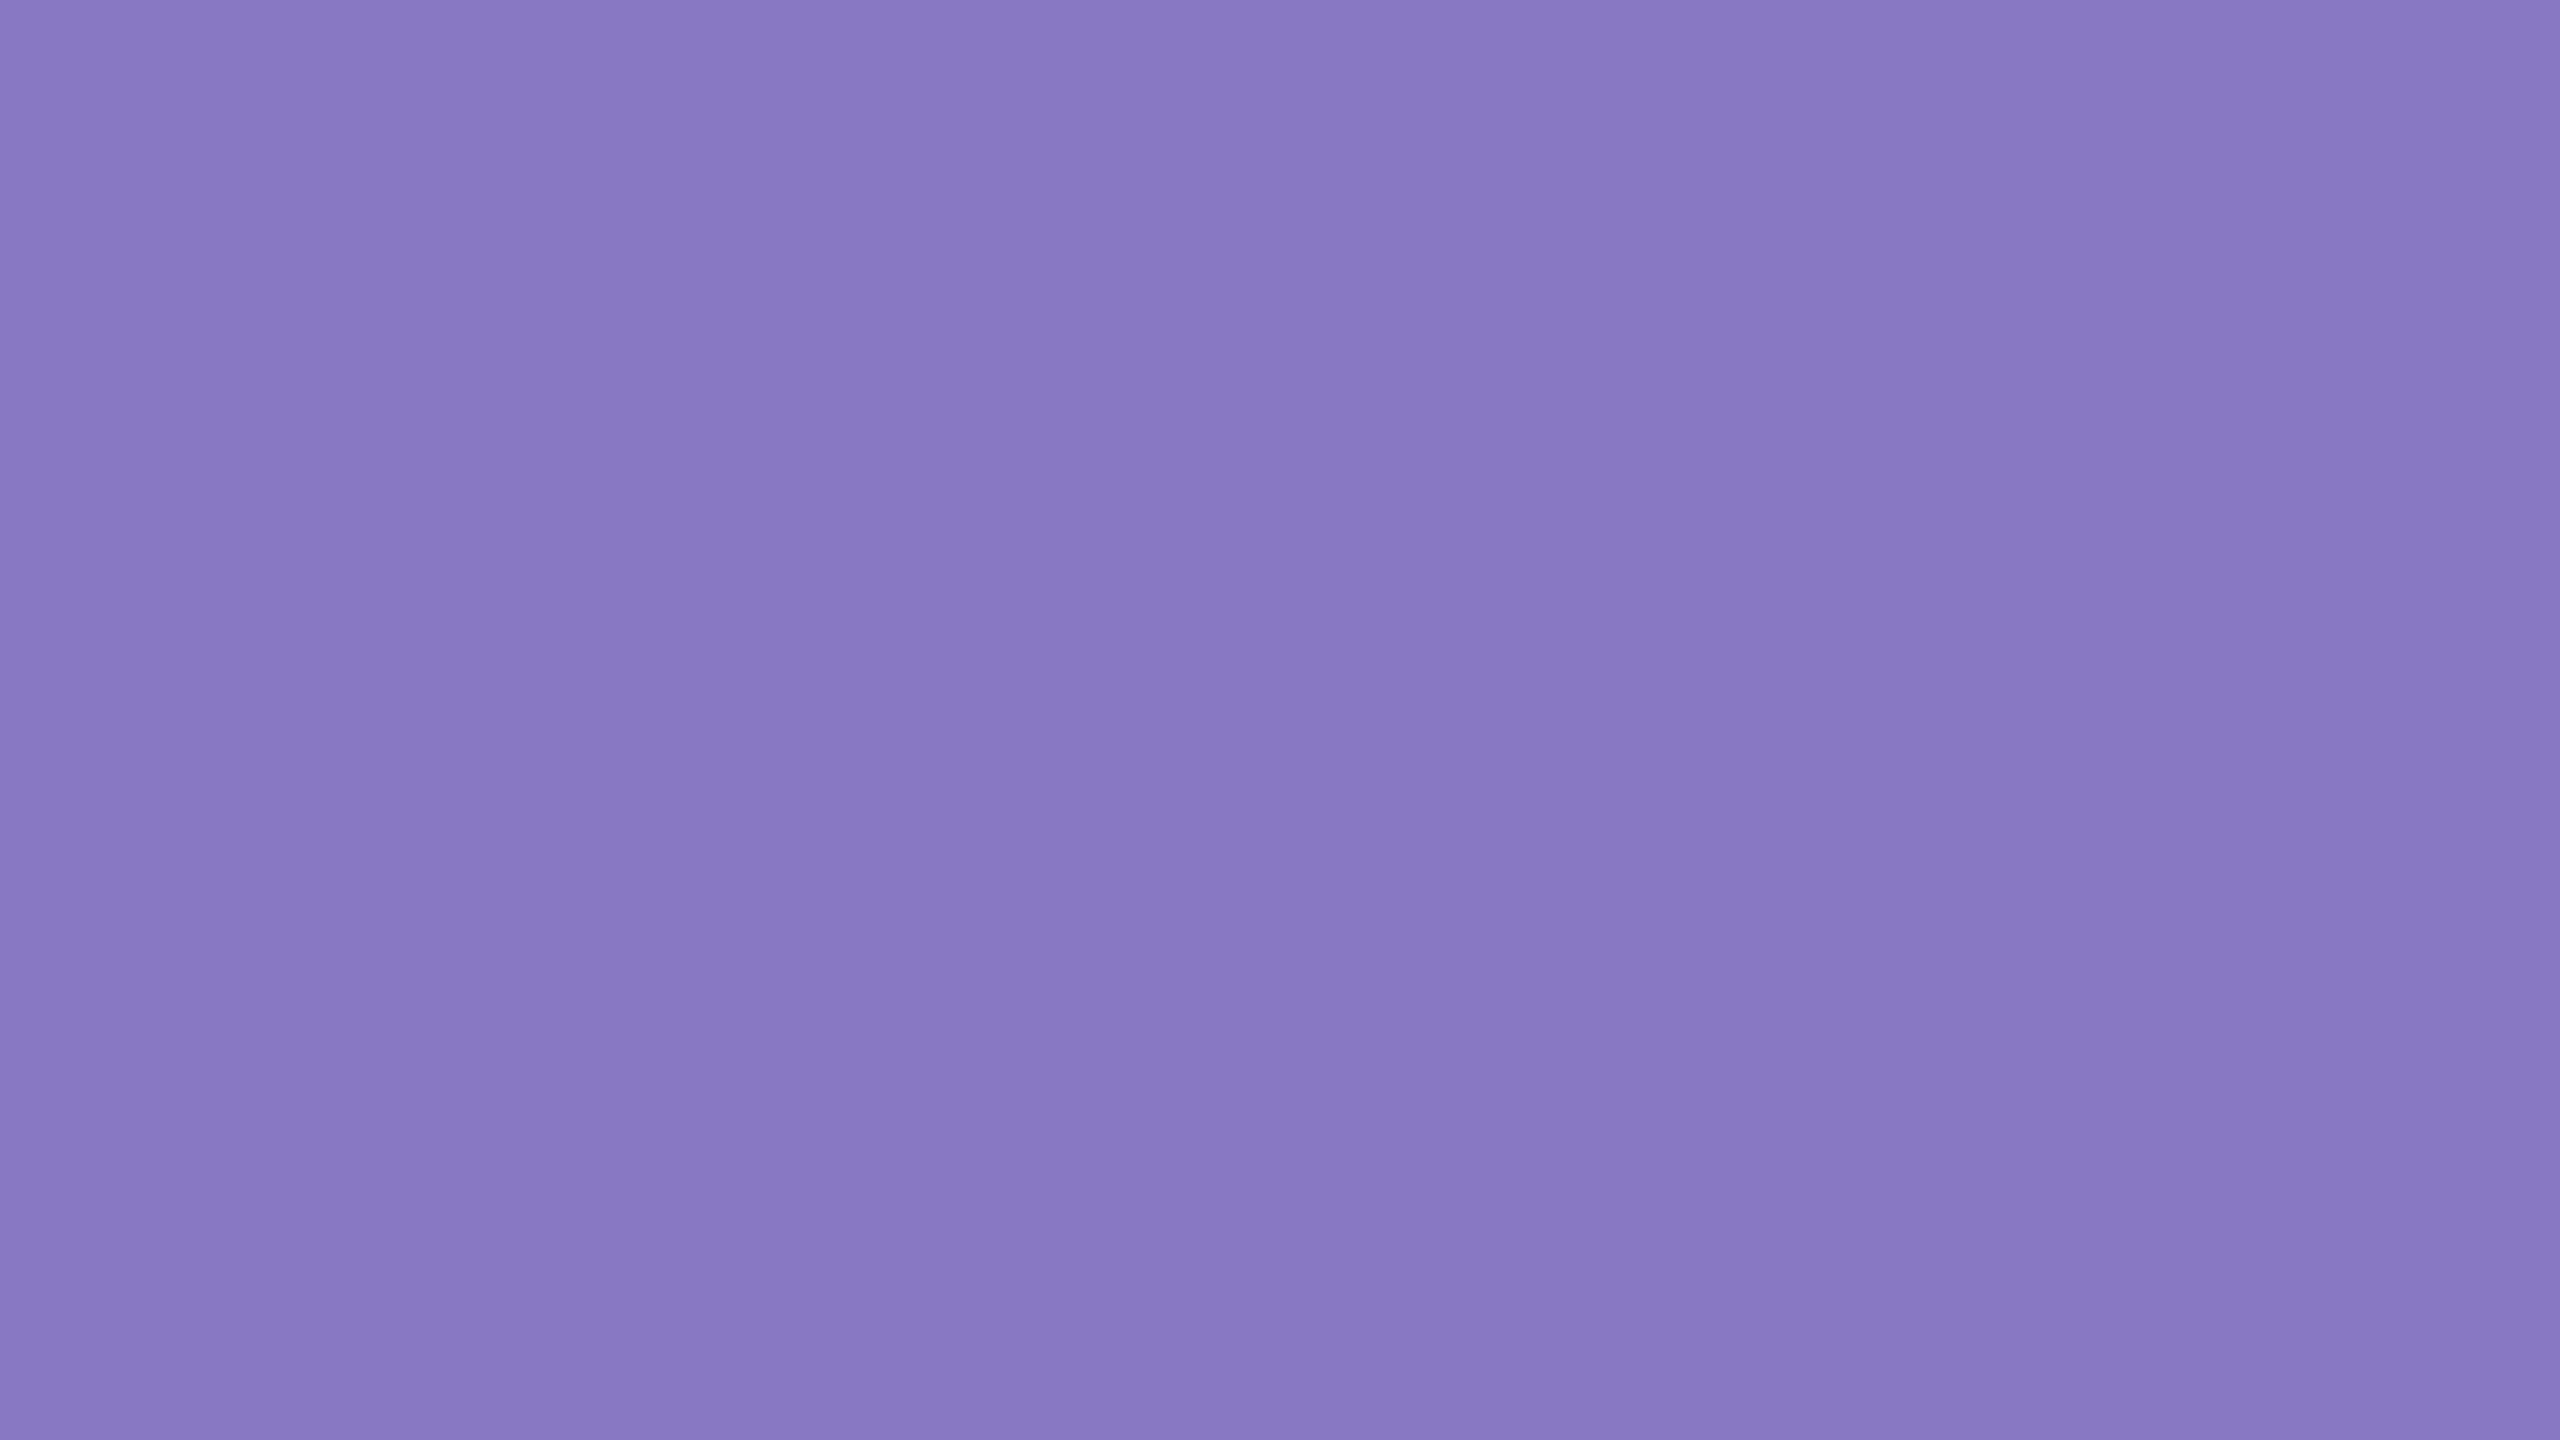 2560x1440 Ube Solid Color Background